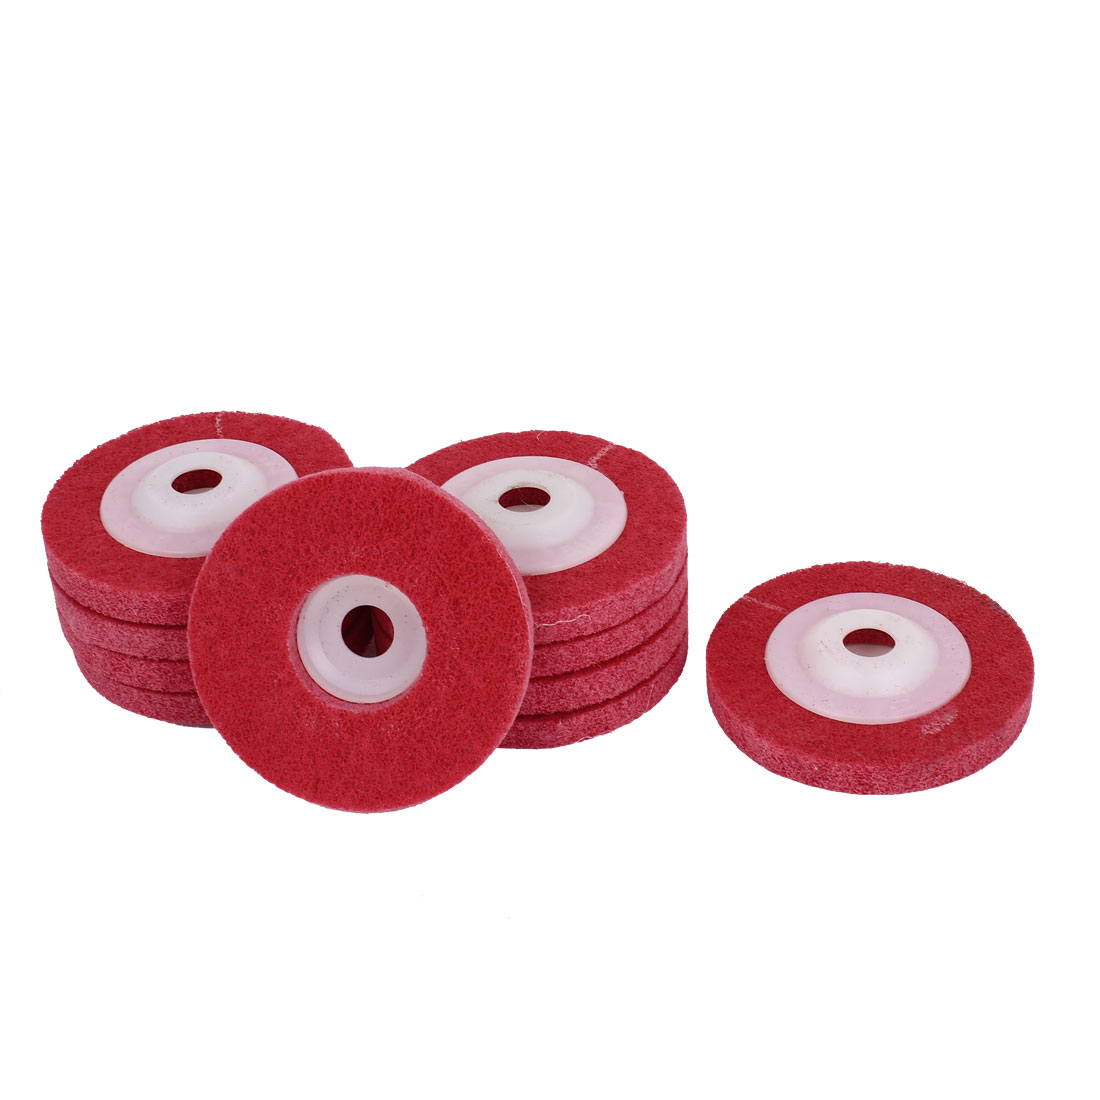 16mm Bore 100mm Dia Nylon Fiber Wheel Abrasive Polishing Buffing Disc Red 10pcs